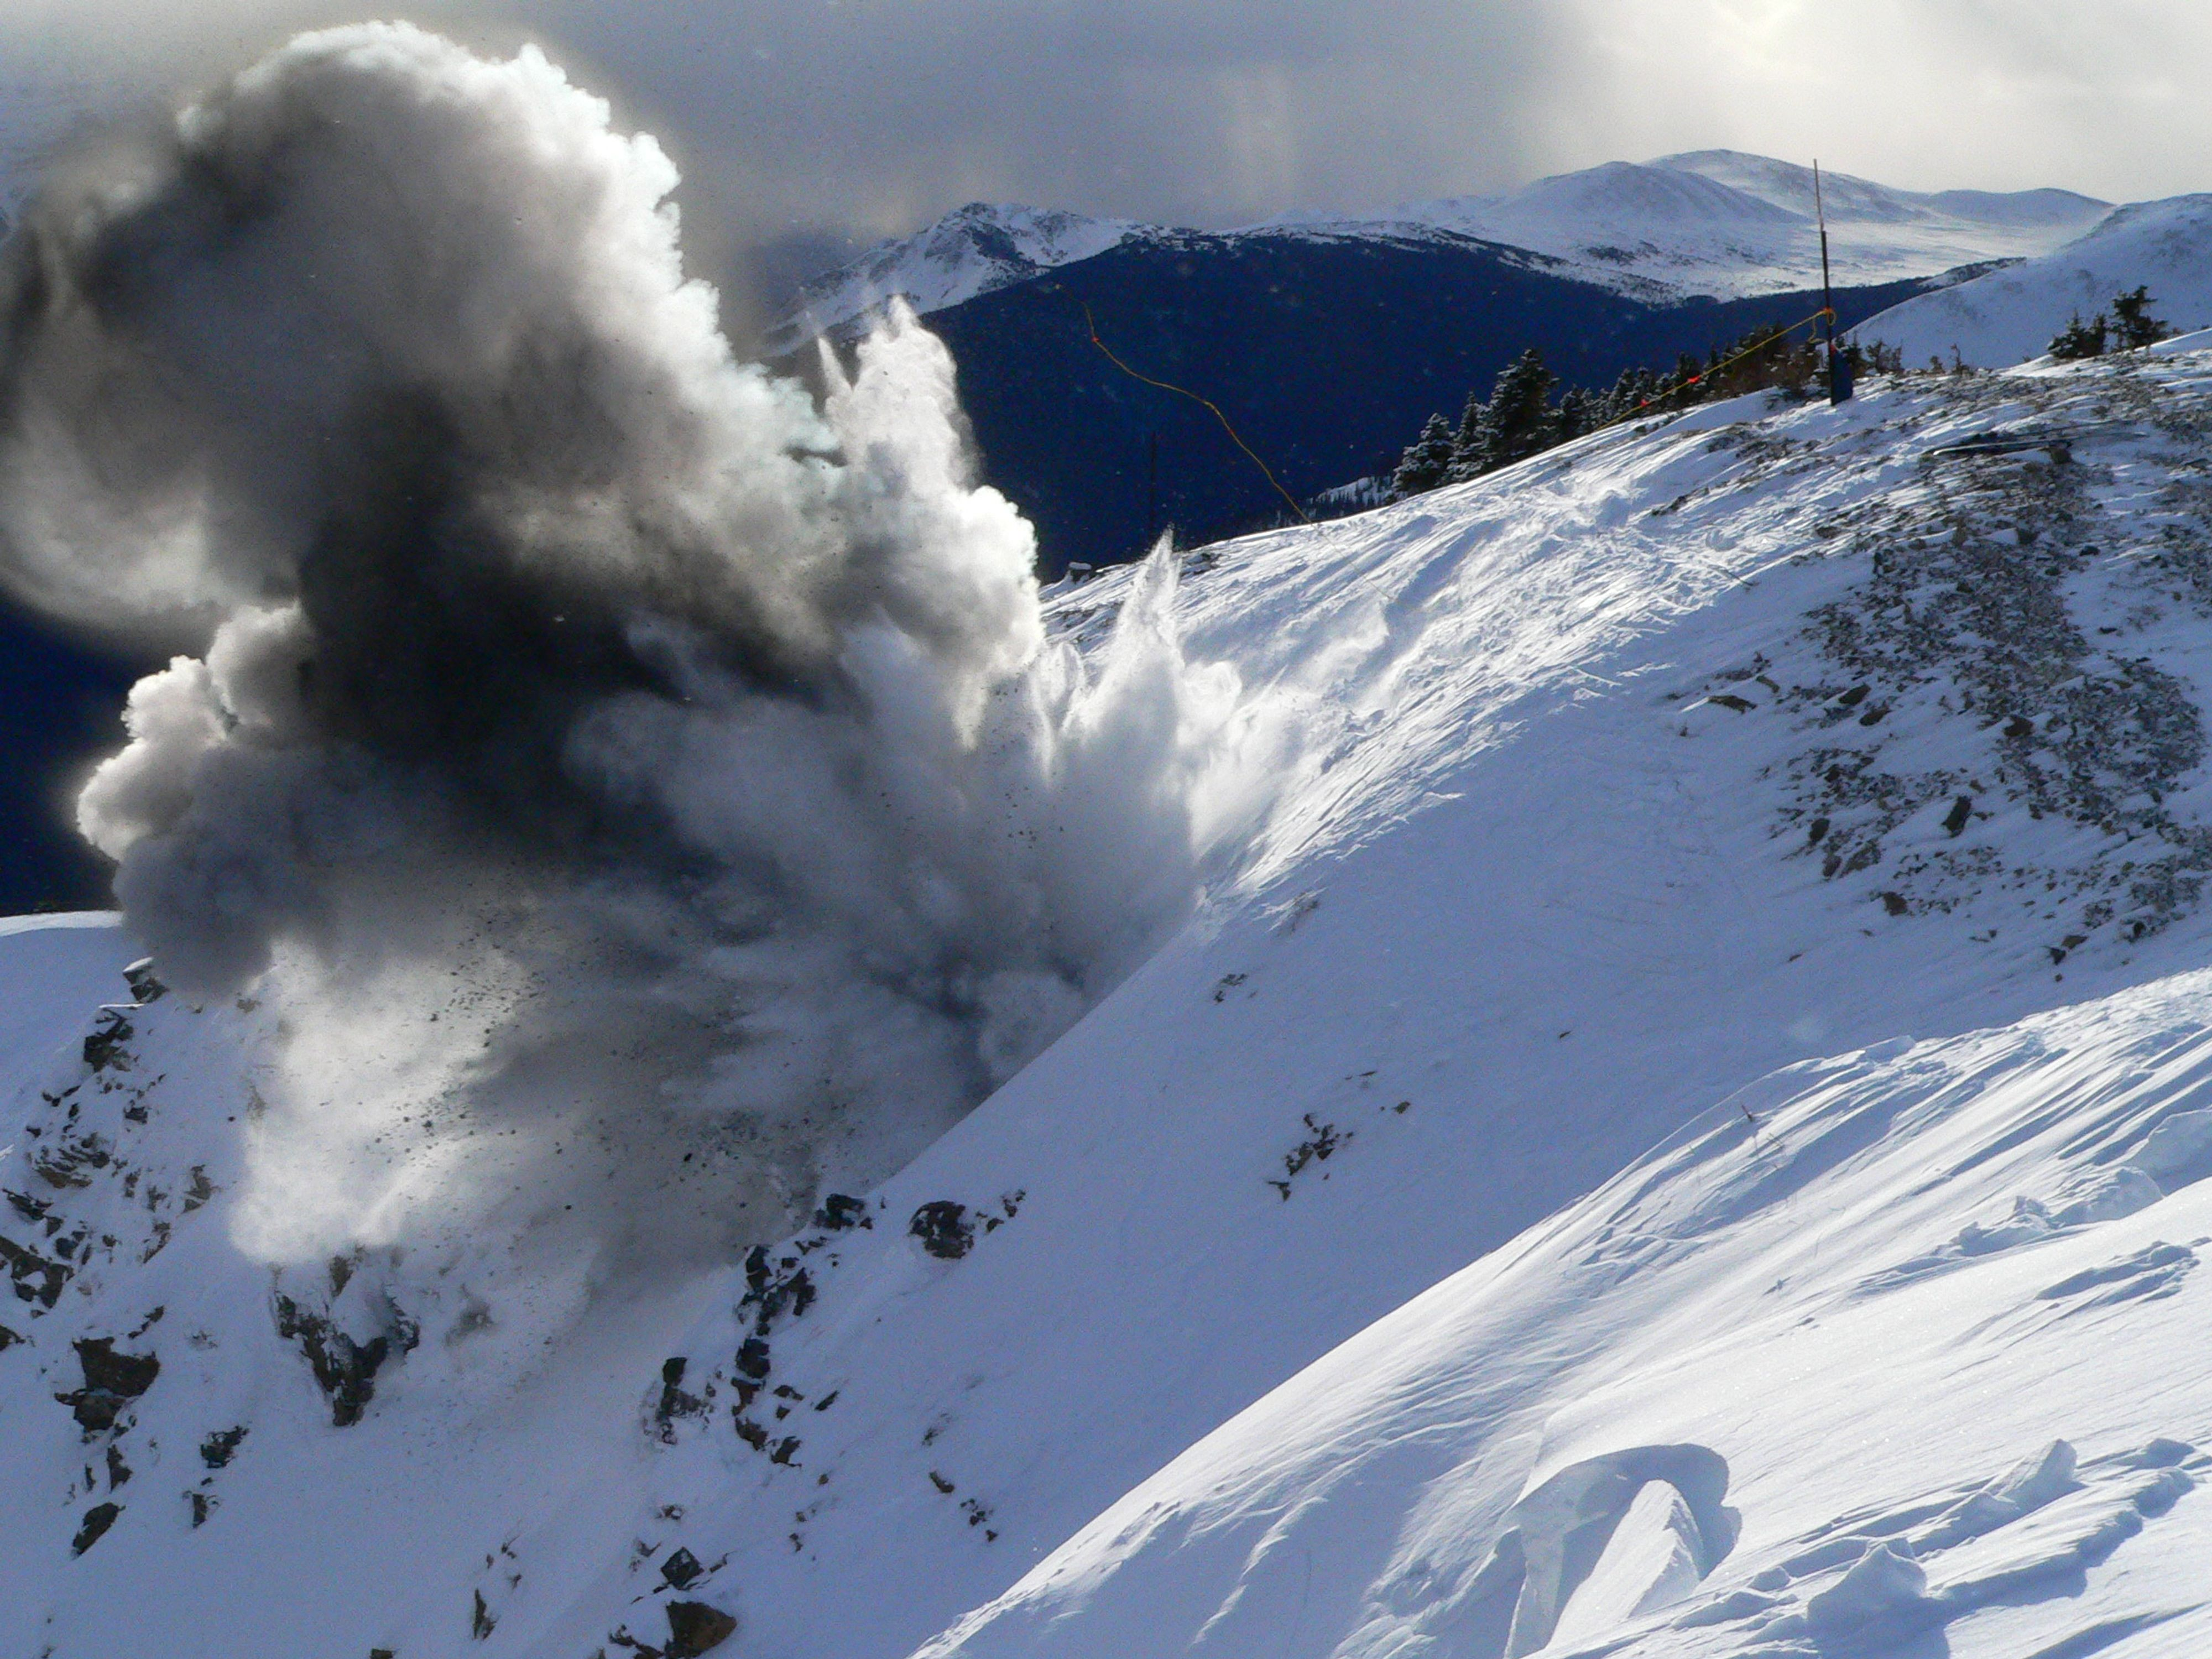 Explosives are used to trigger avalanches when no public is in an area in order to avoid large avalanches when the public is at risk